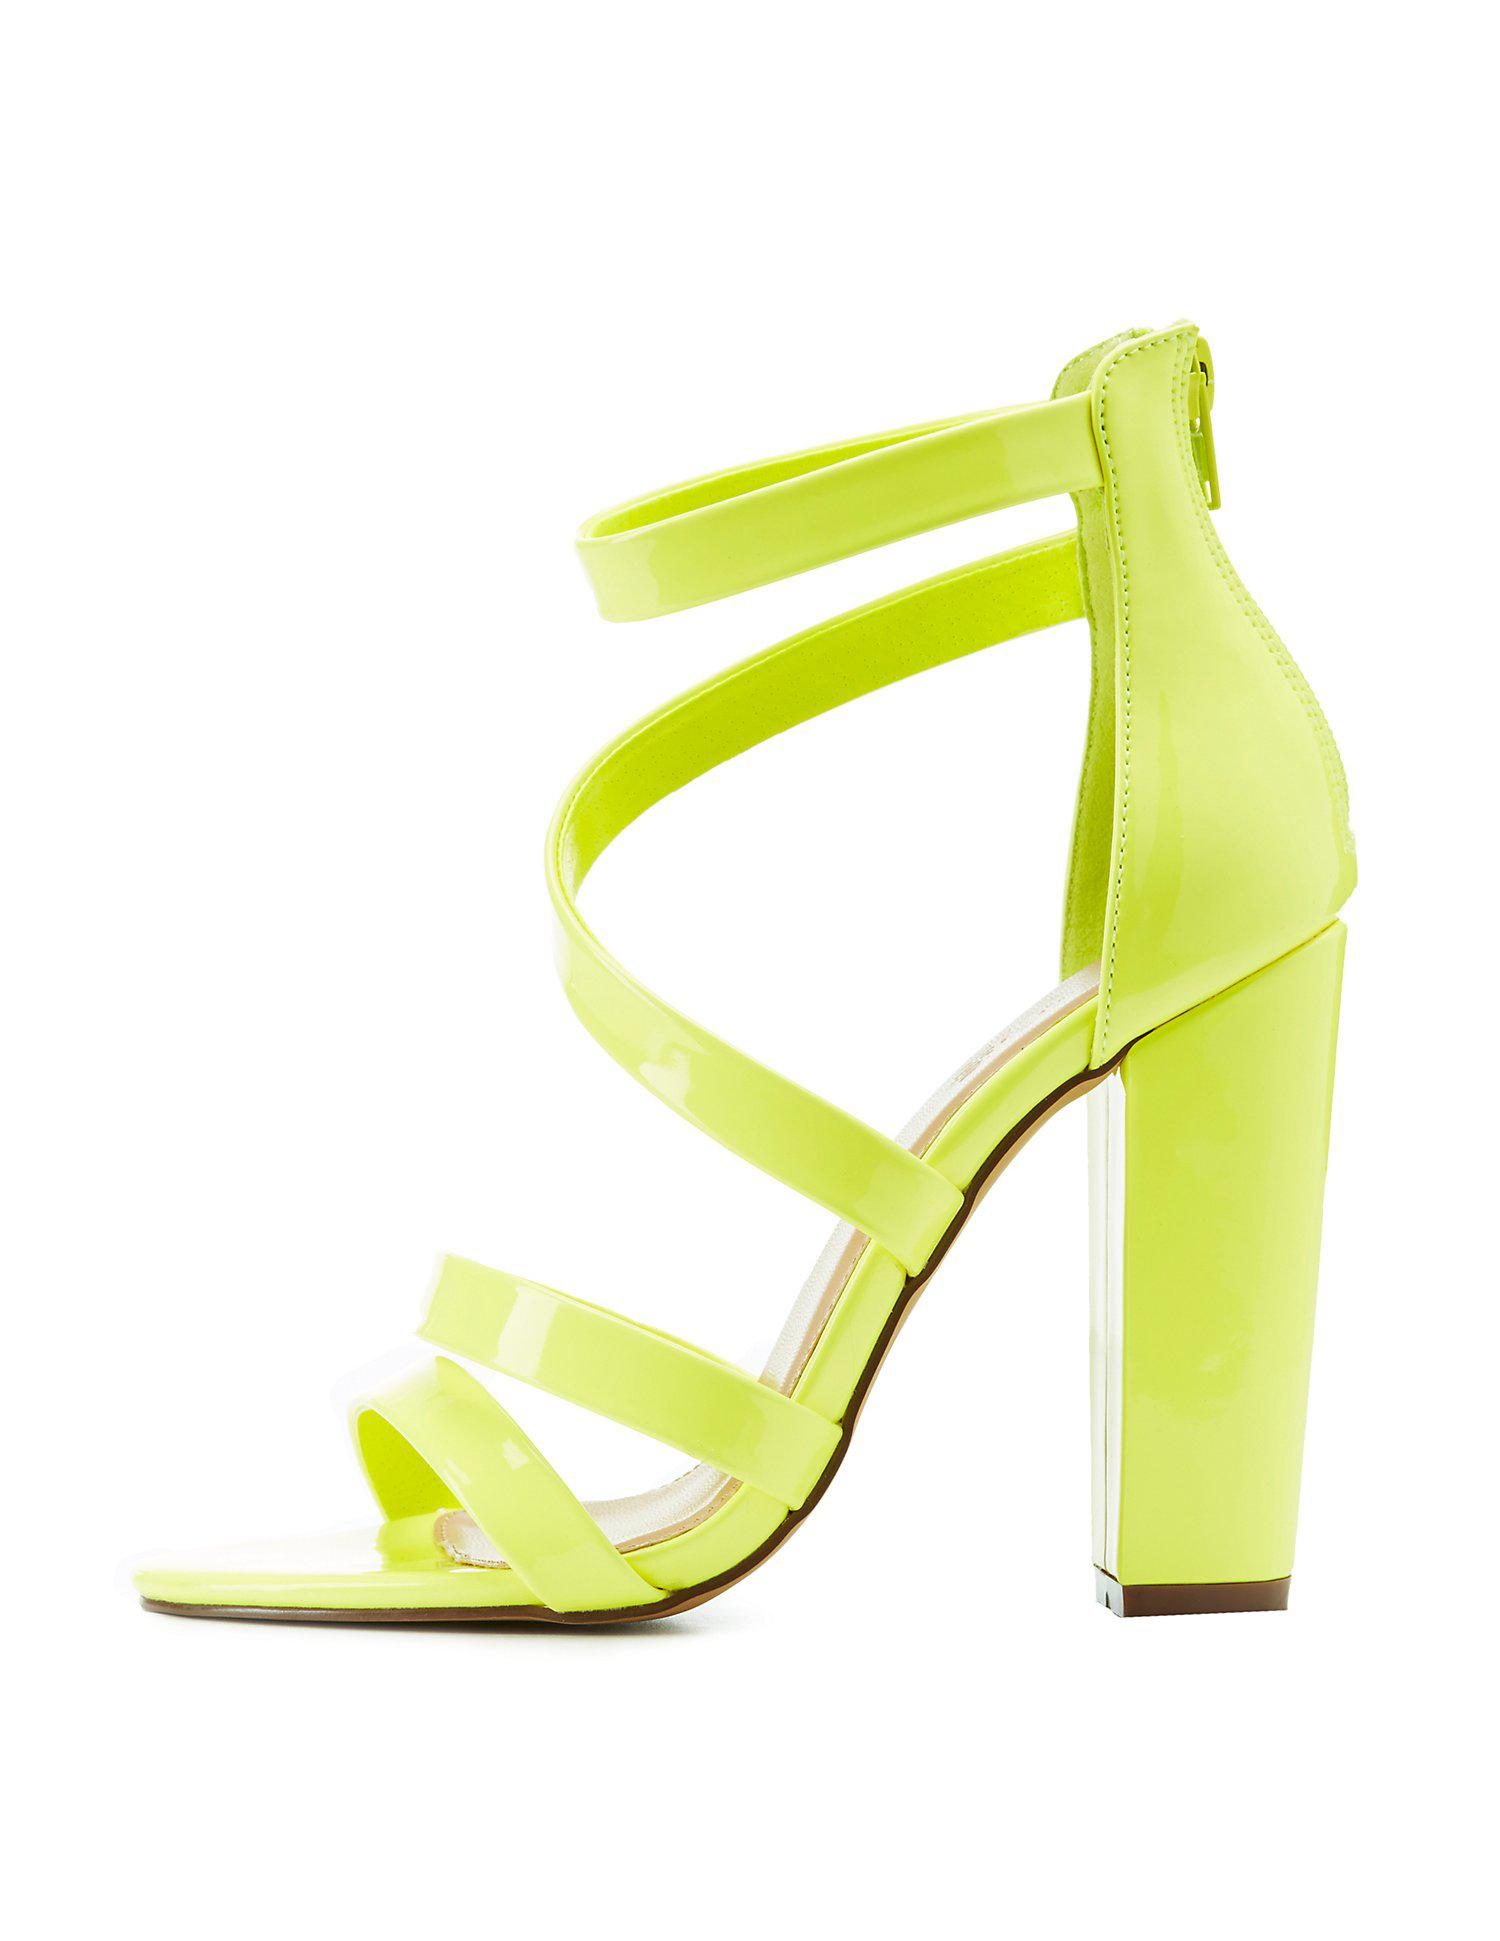 9d0329c937c Lyst - Charlotte Russe Caged Block Heel Sandals in Yellow - Save 29%